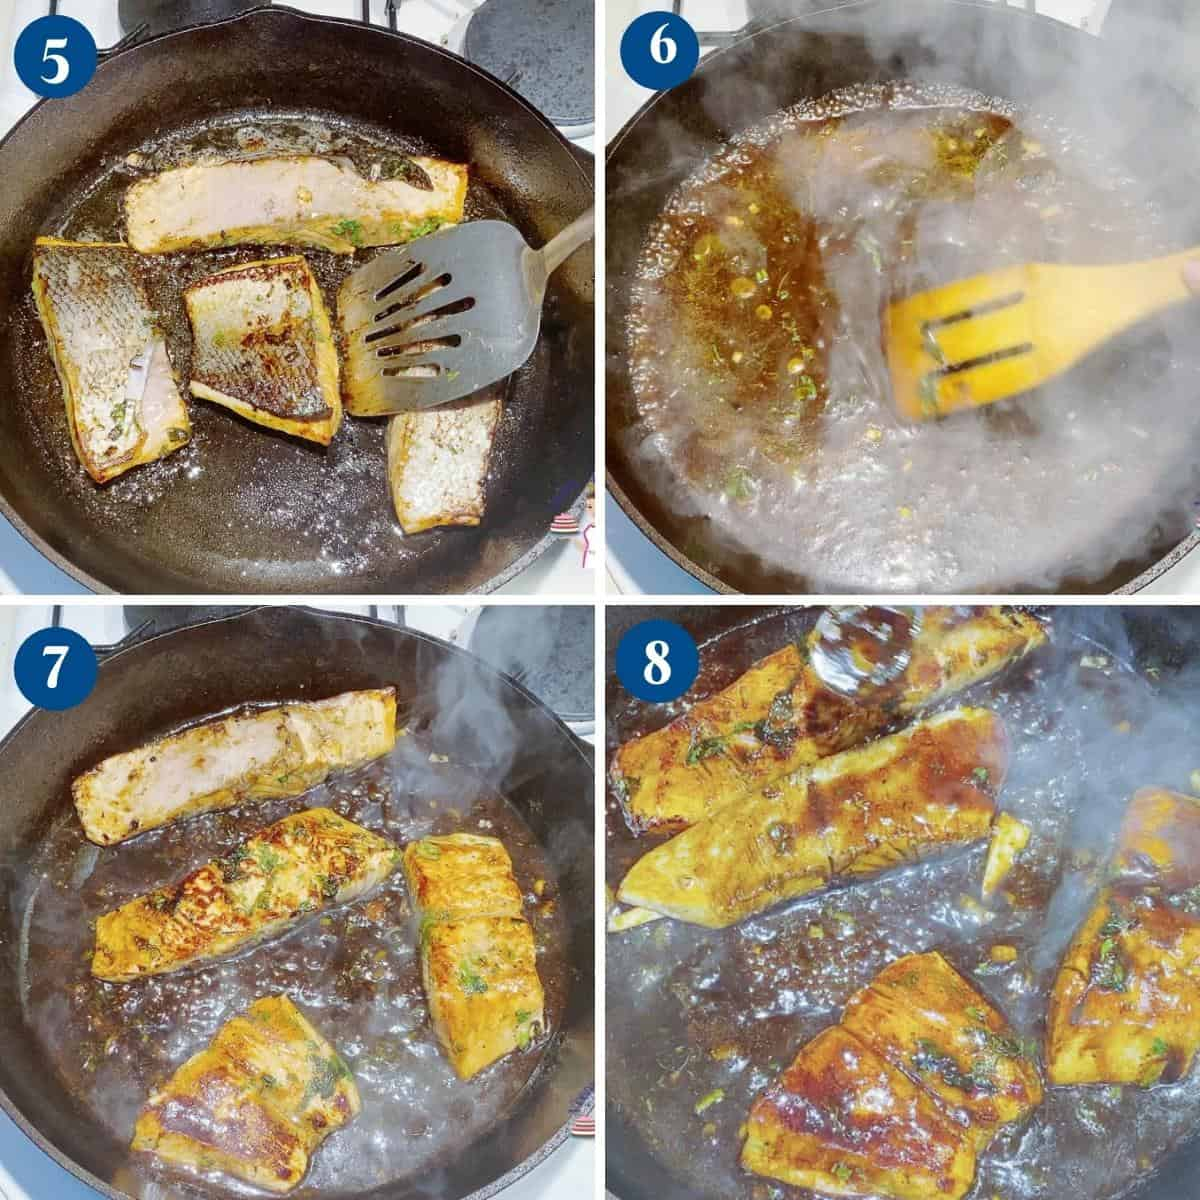 Progress pictures for balsamic salmon.